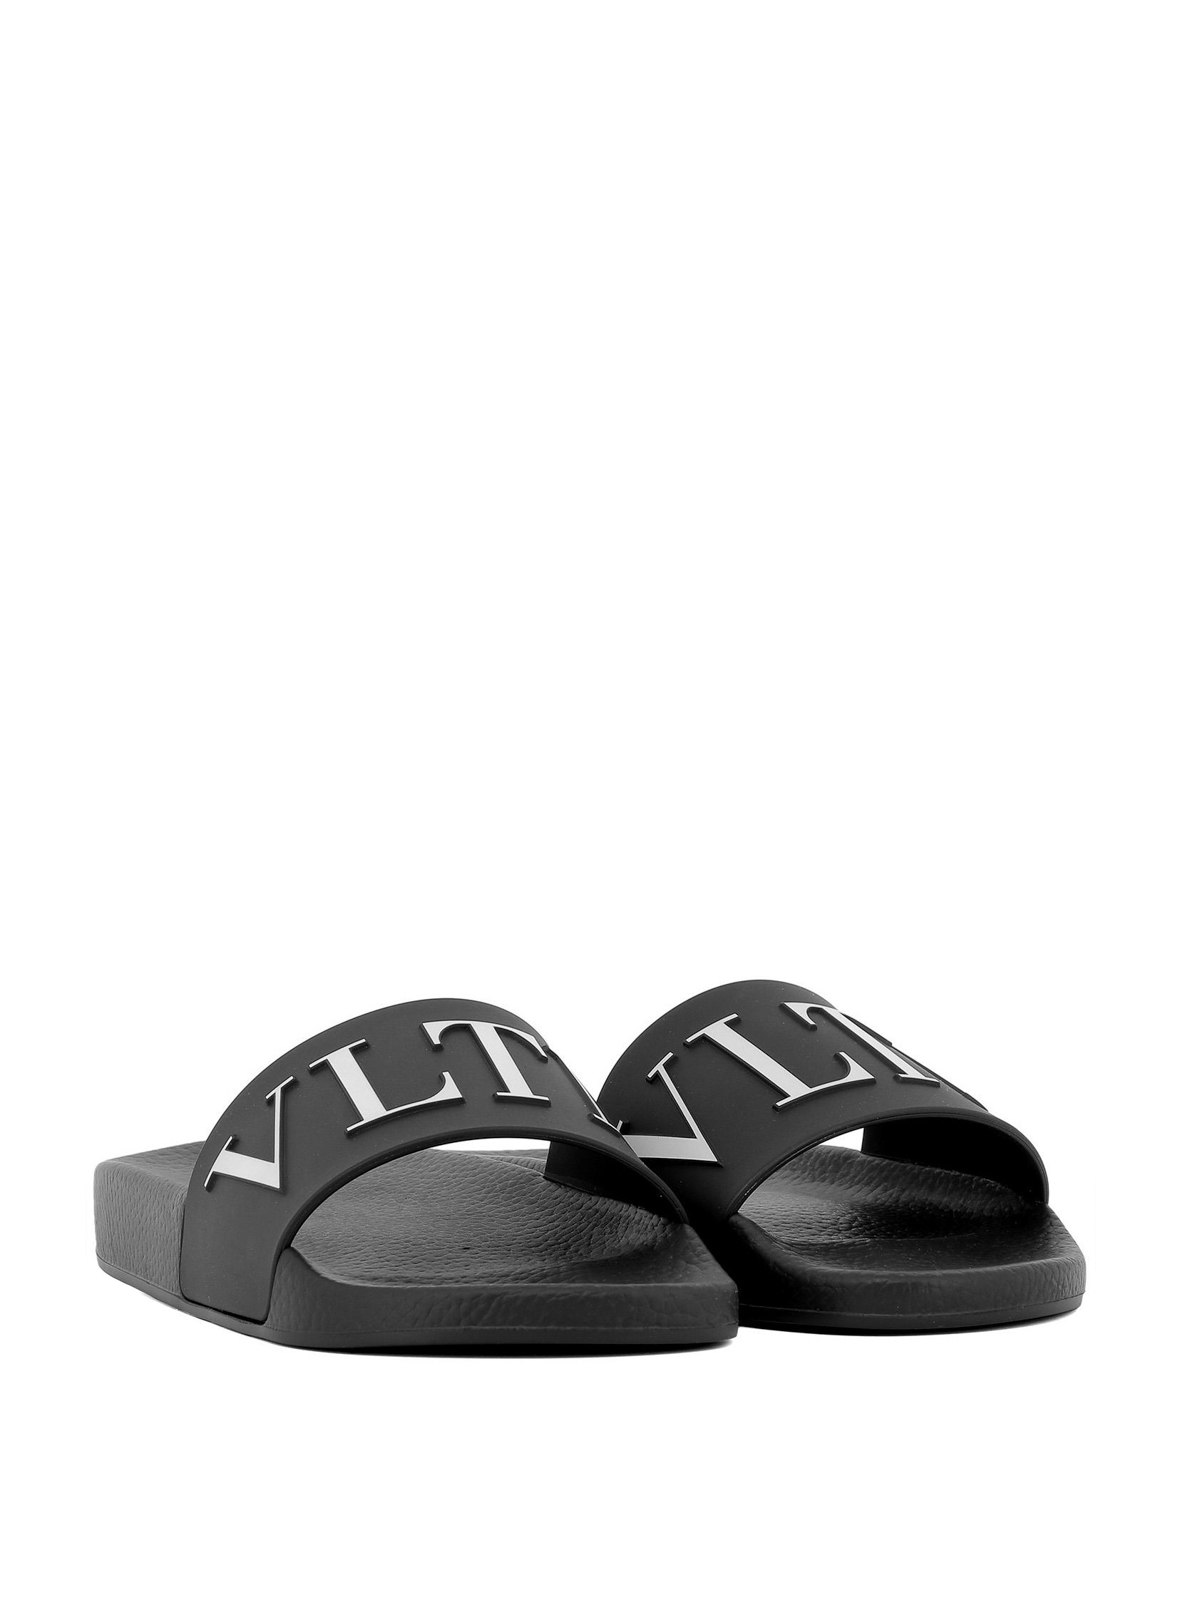 1eb36df52cb VALENTINO GARAVANI  sandals online - VLTN black rubber slide sandals